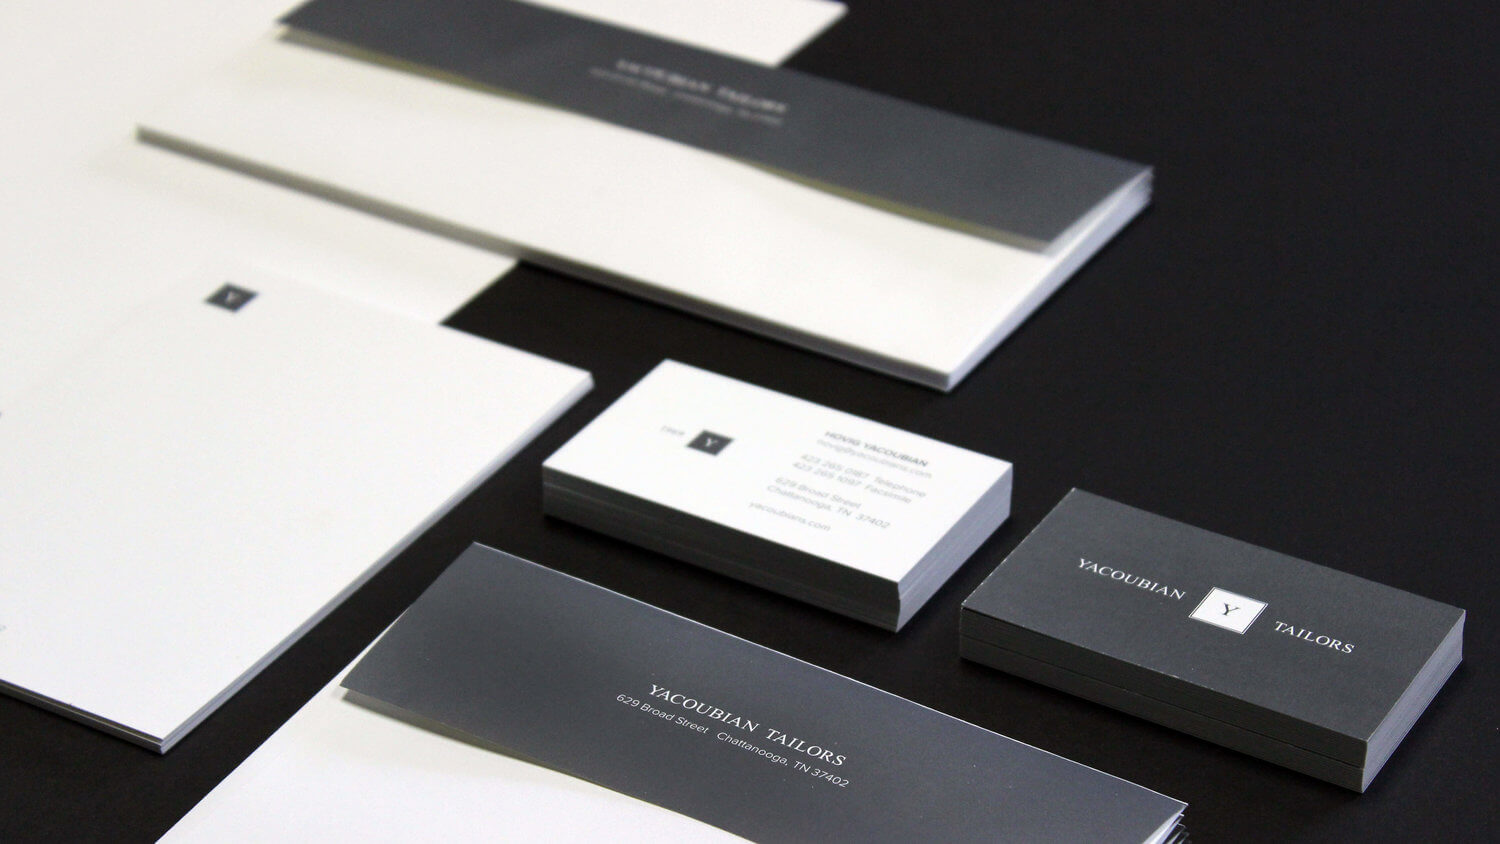 yacoubians-tailors-brand-identity-print-collateral.jpg